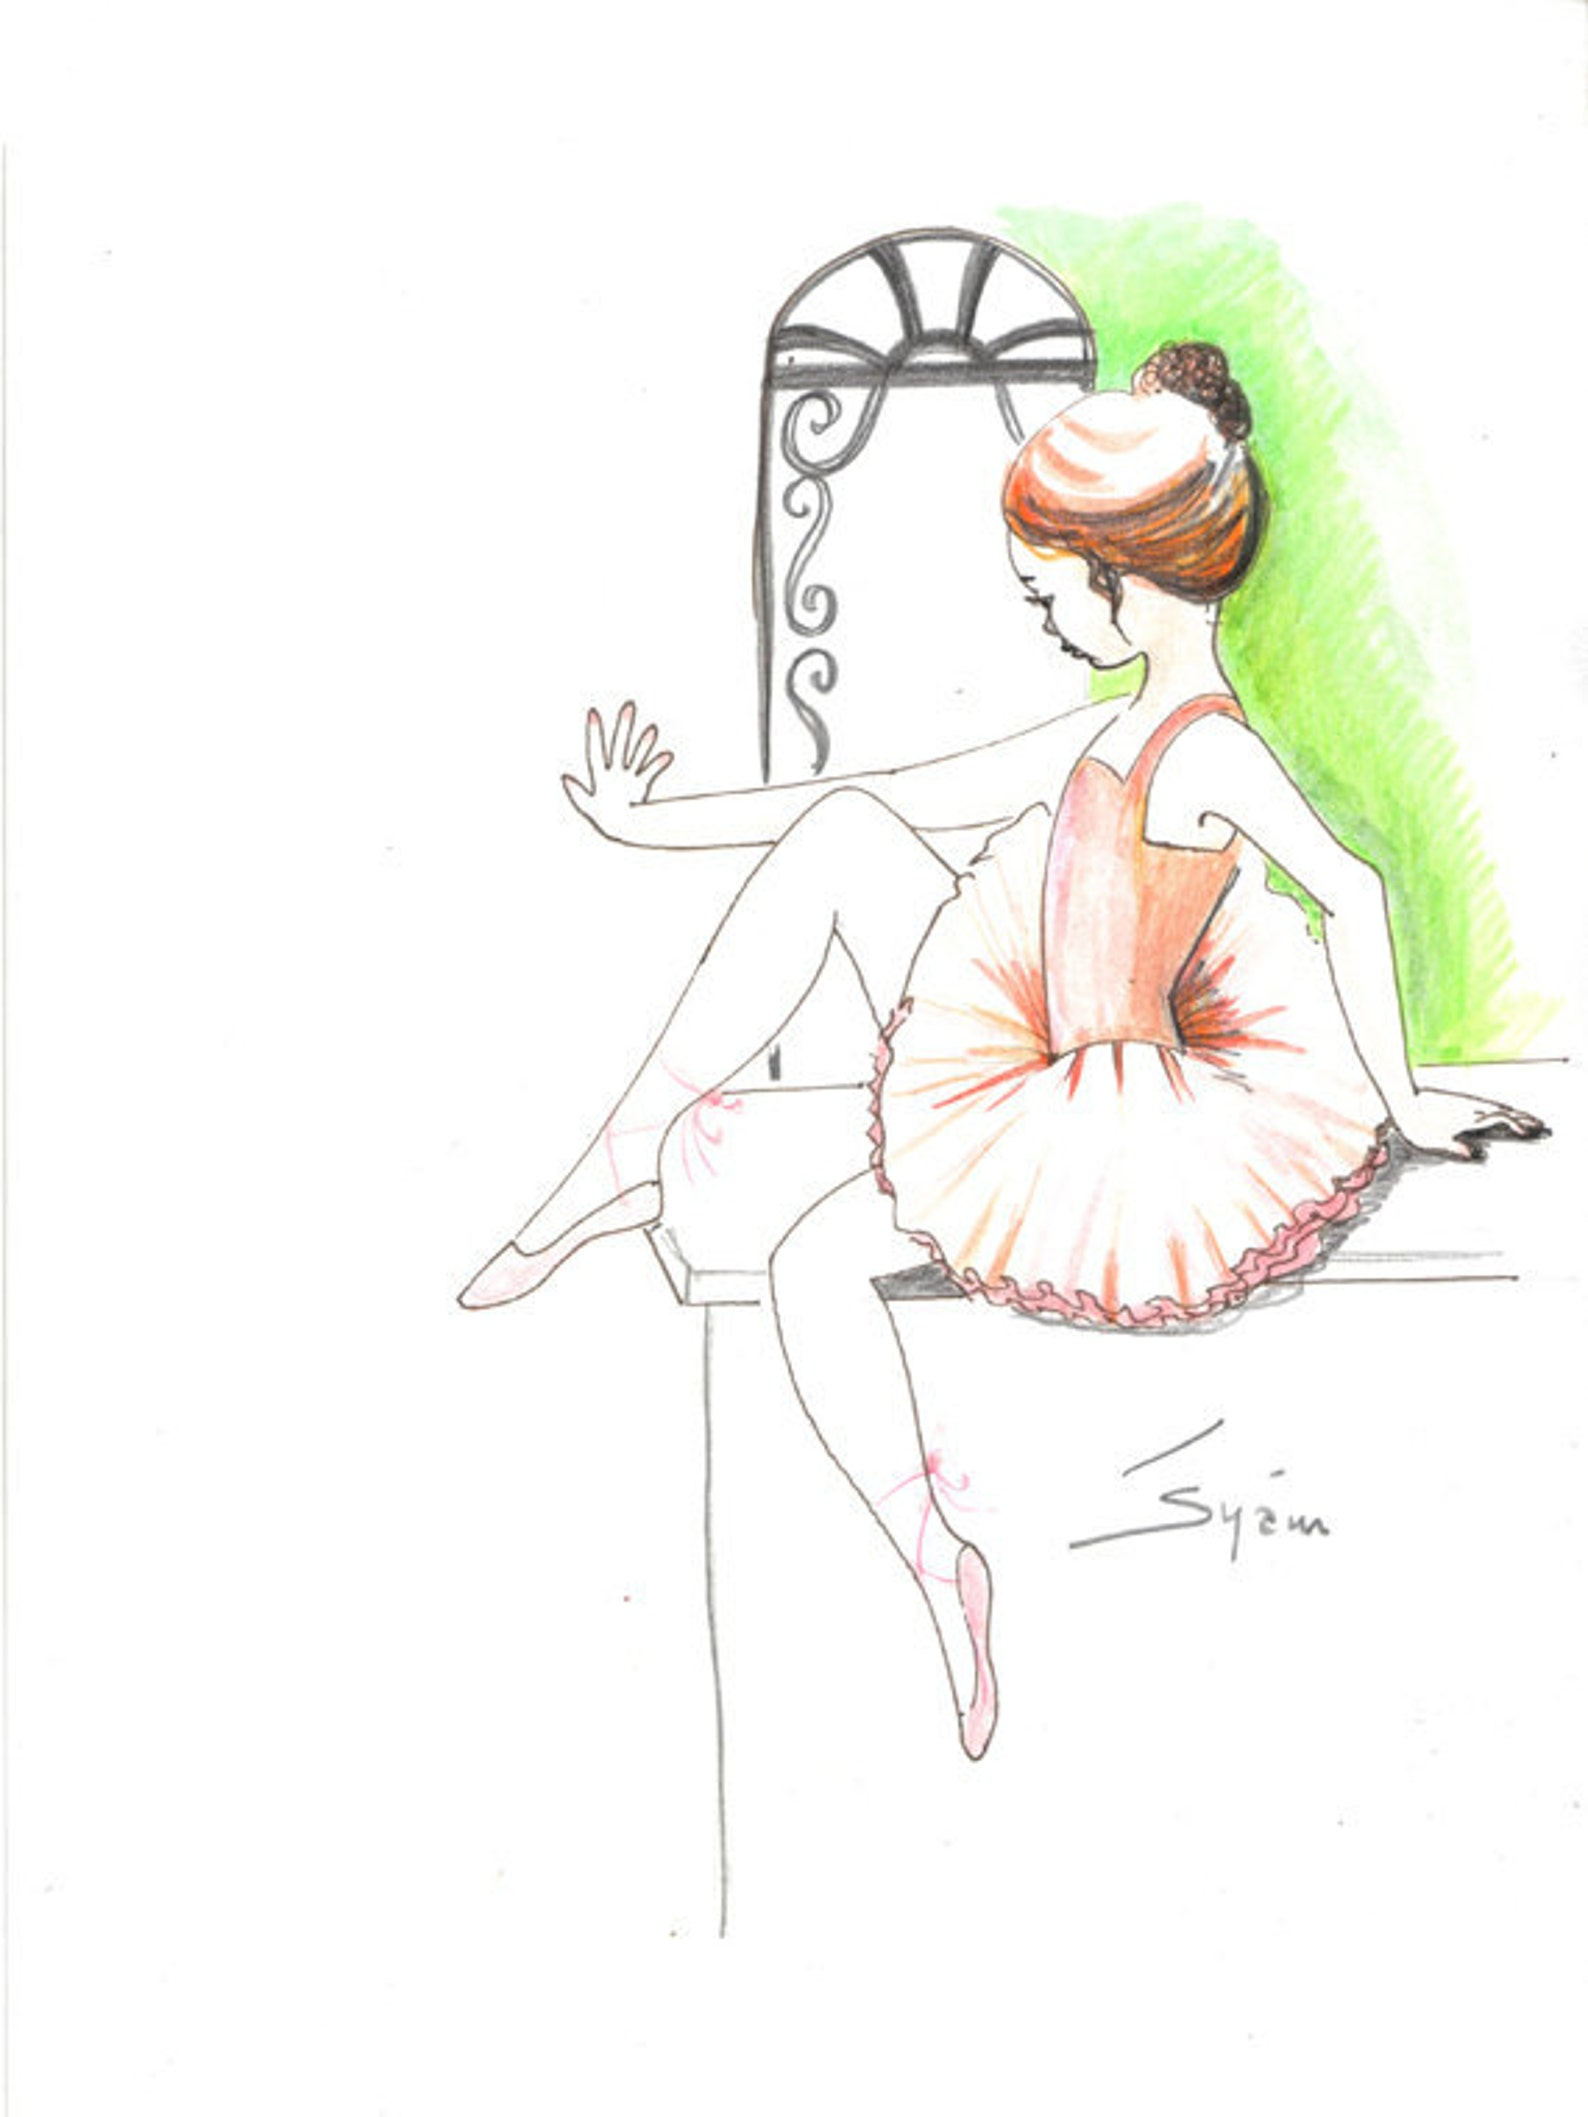 original pen drawing with watercolor..the little ballerina in italy, ballet art, ballerina, girl in tutu, painting, ink sketch